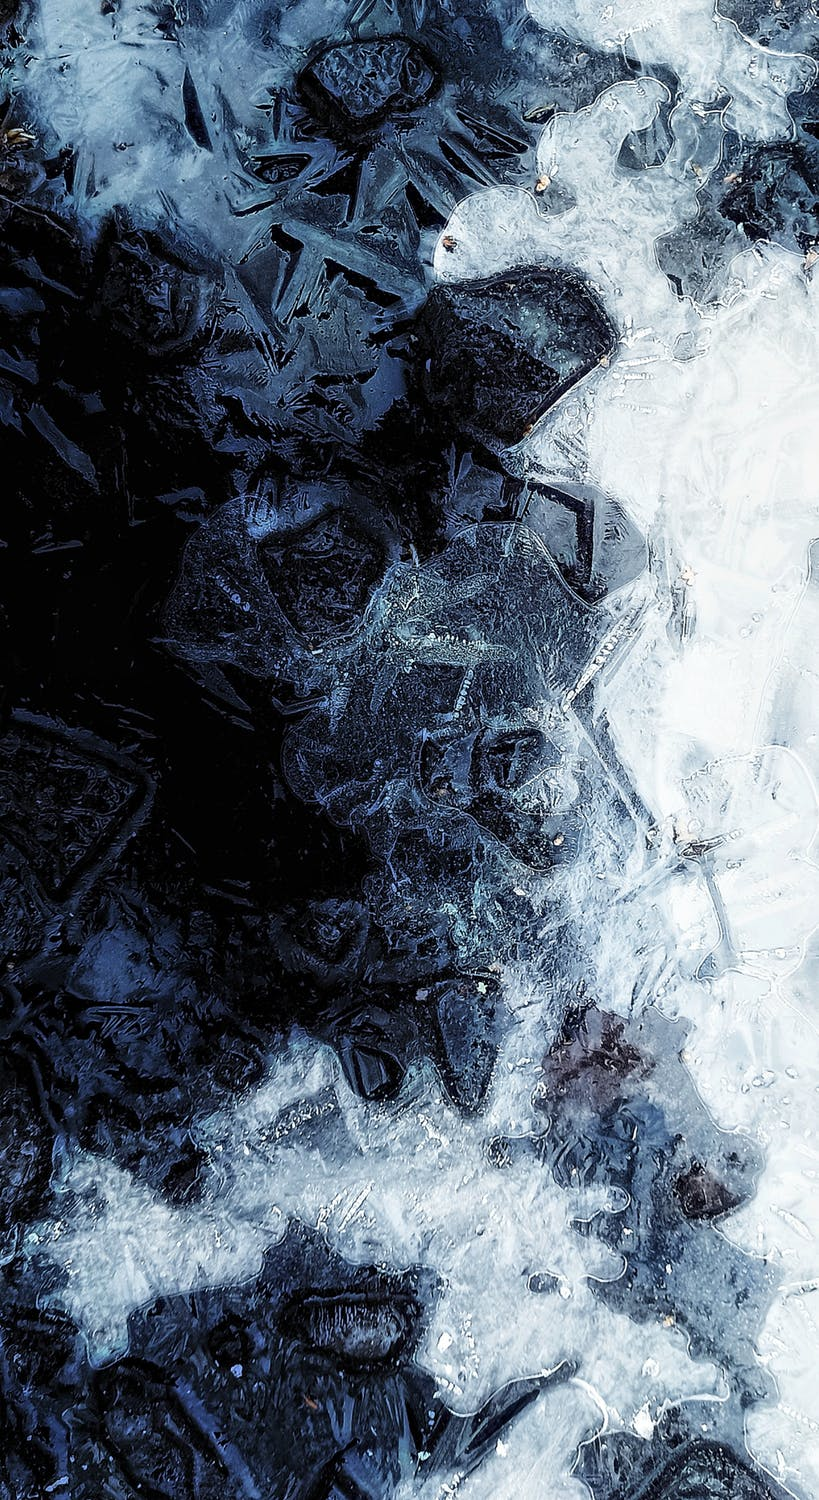 Icy water iphone wallpaper, cracked ice wallpaper